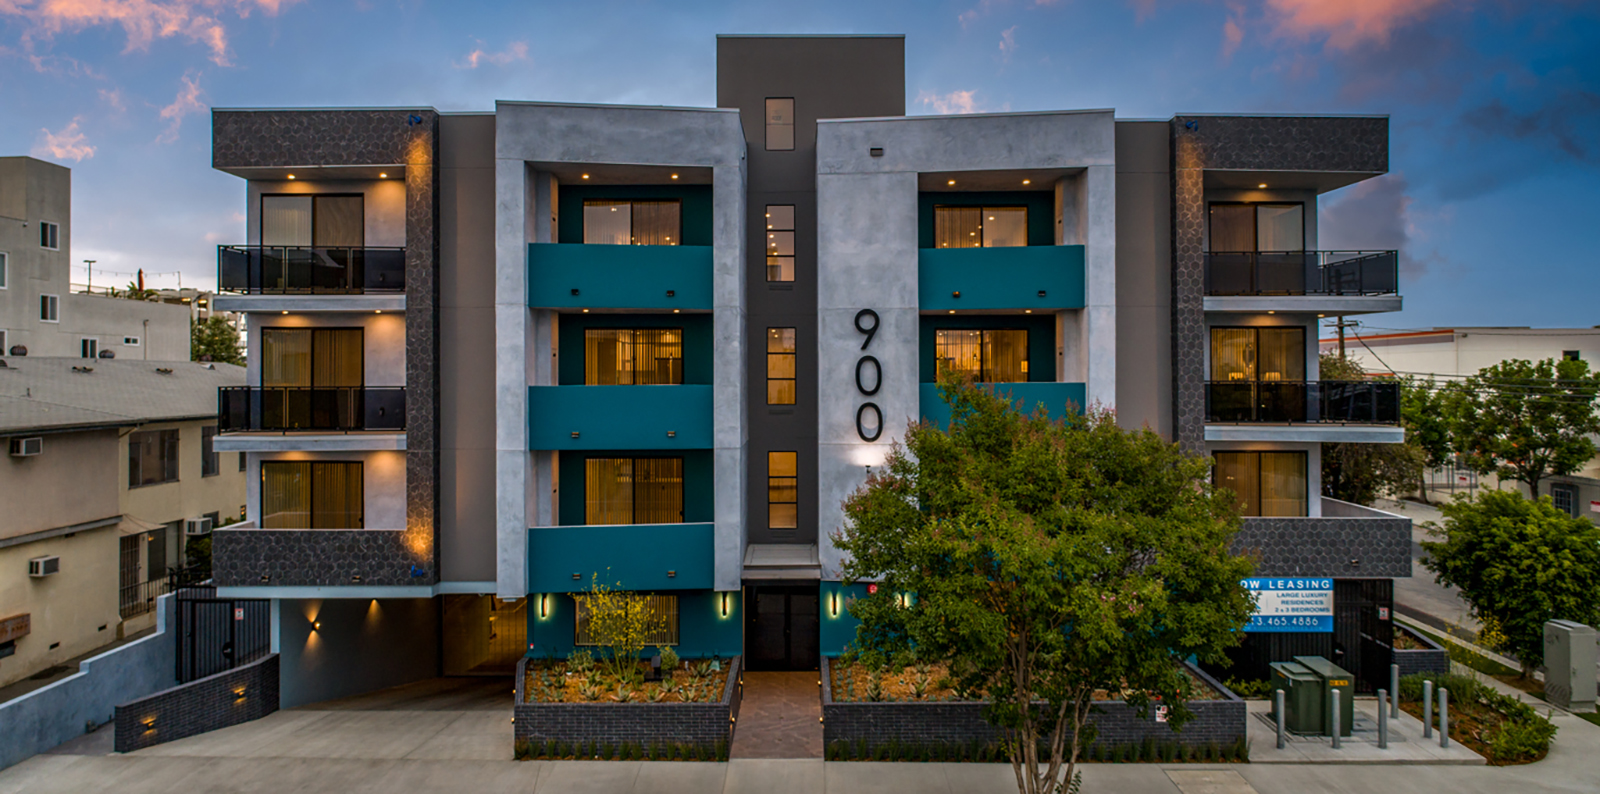 STUNNING 3BR/2BA W/ LARGE PRIVATE PATIO, ROOFTOP, GYM, & 2 PARKING SPACES IN THE HEART OF HOLLYWOOD